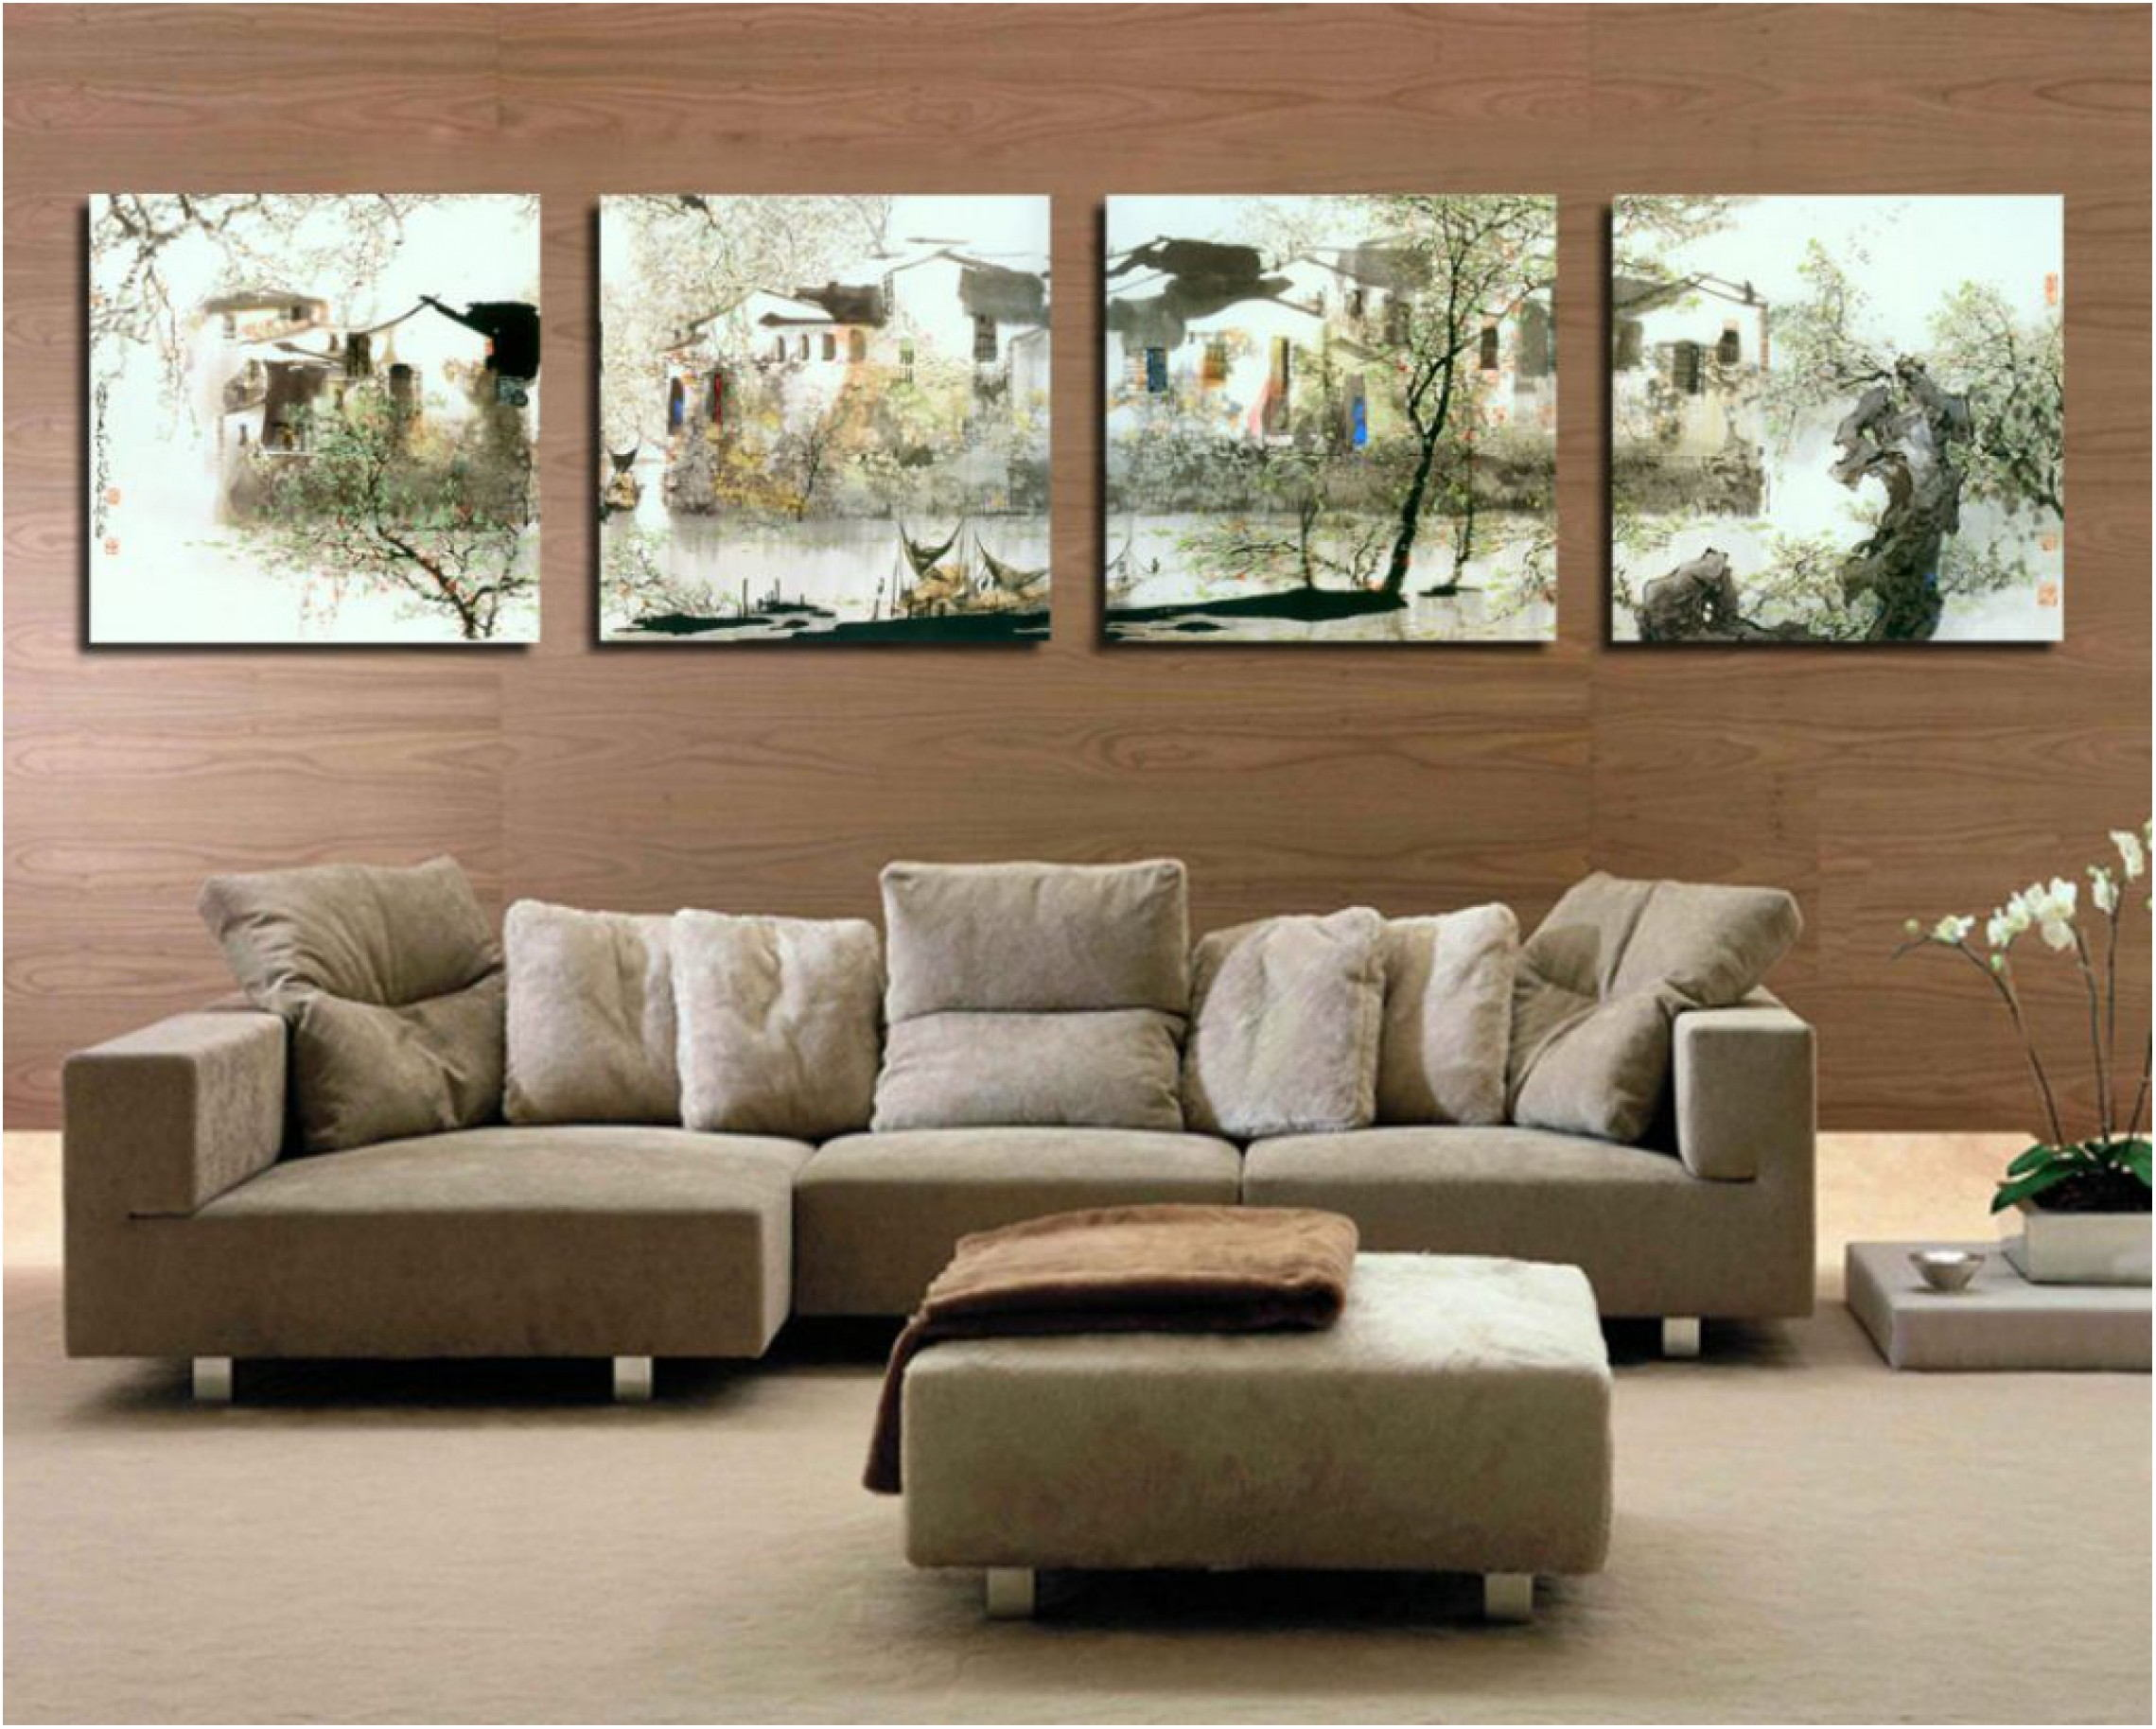 The Living Room Wall Painting And Decoration